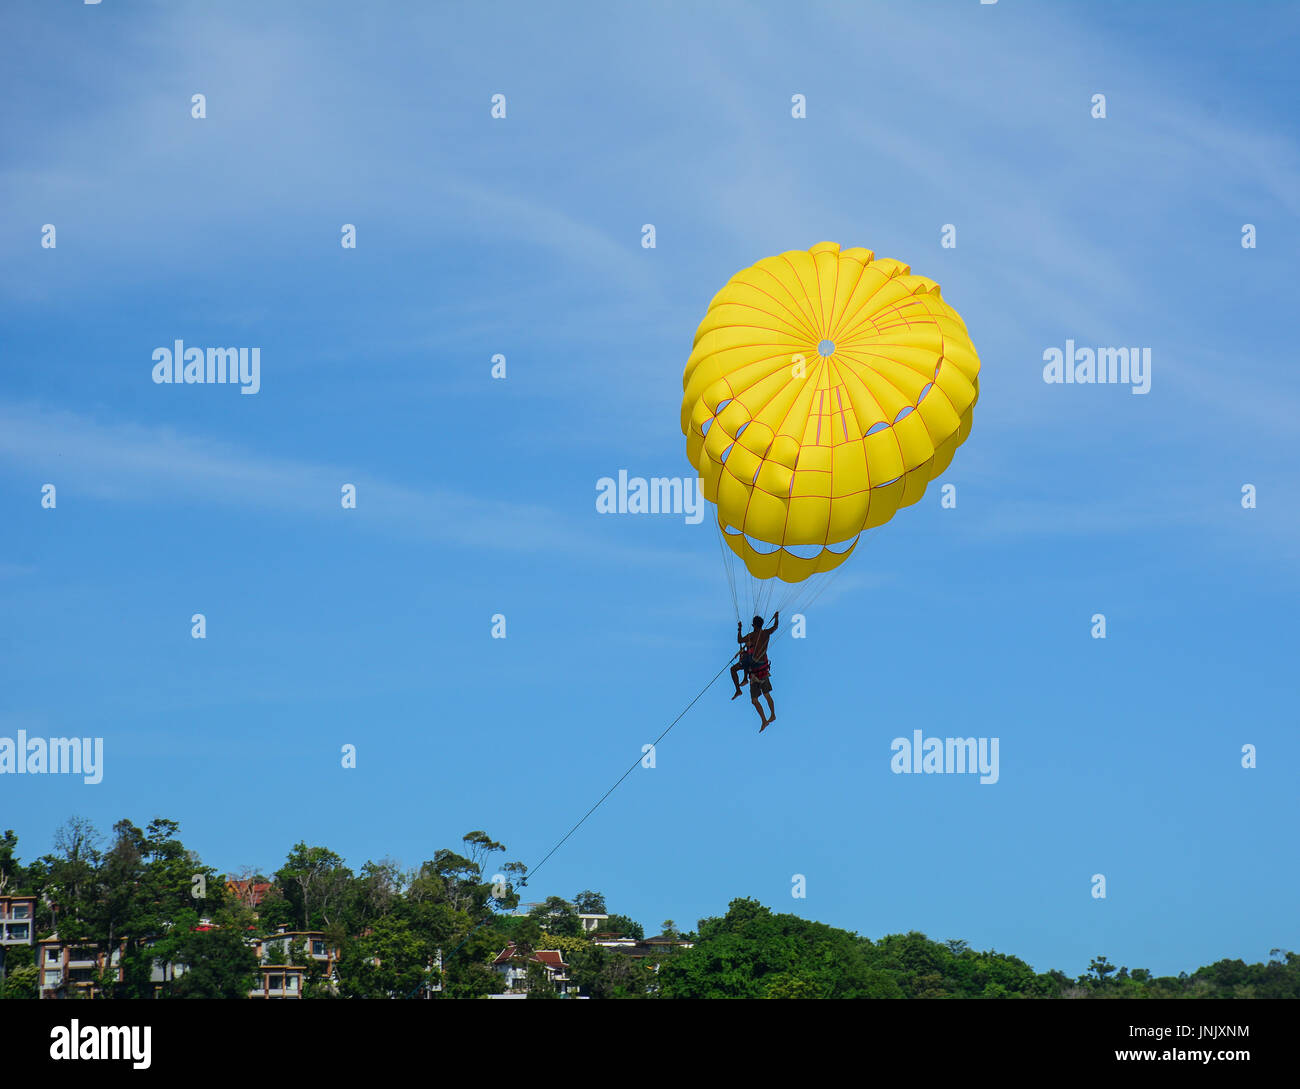 People playing parasailing in Phuket, Thailand. Phuket is a heady mix of bustling bars, night spots, restaurants and truly spectacular dive locations. - Stock Image